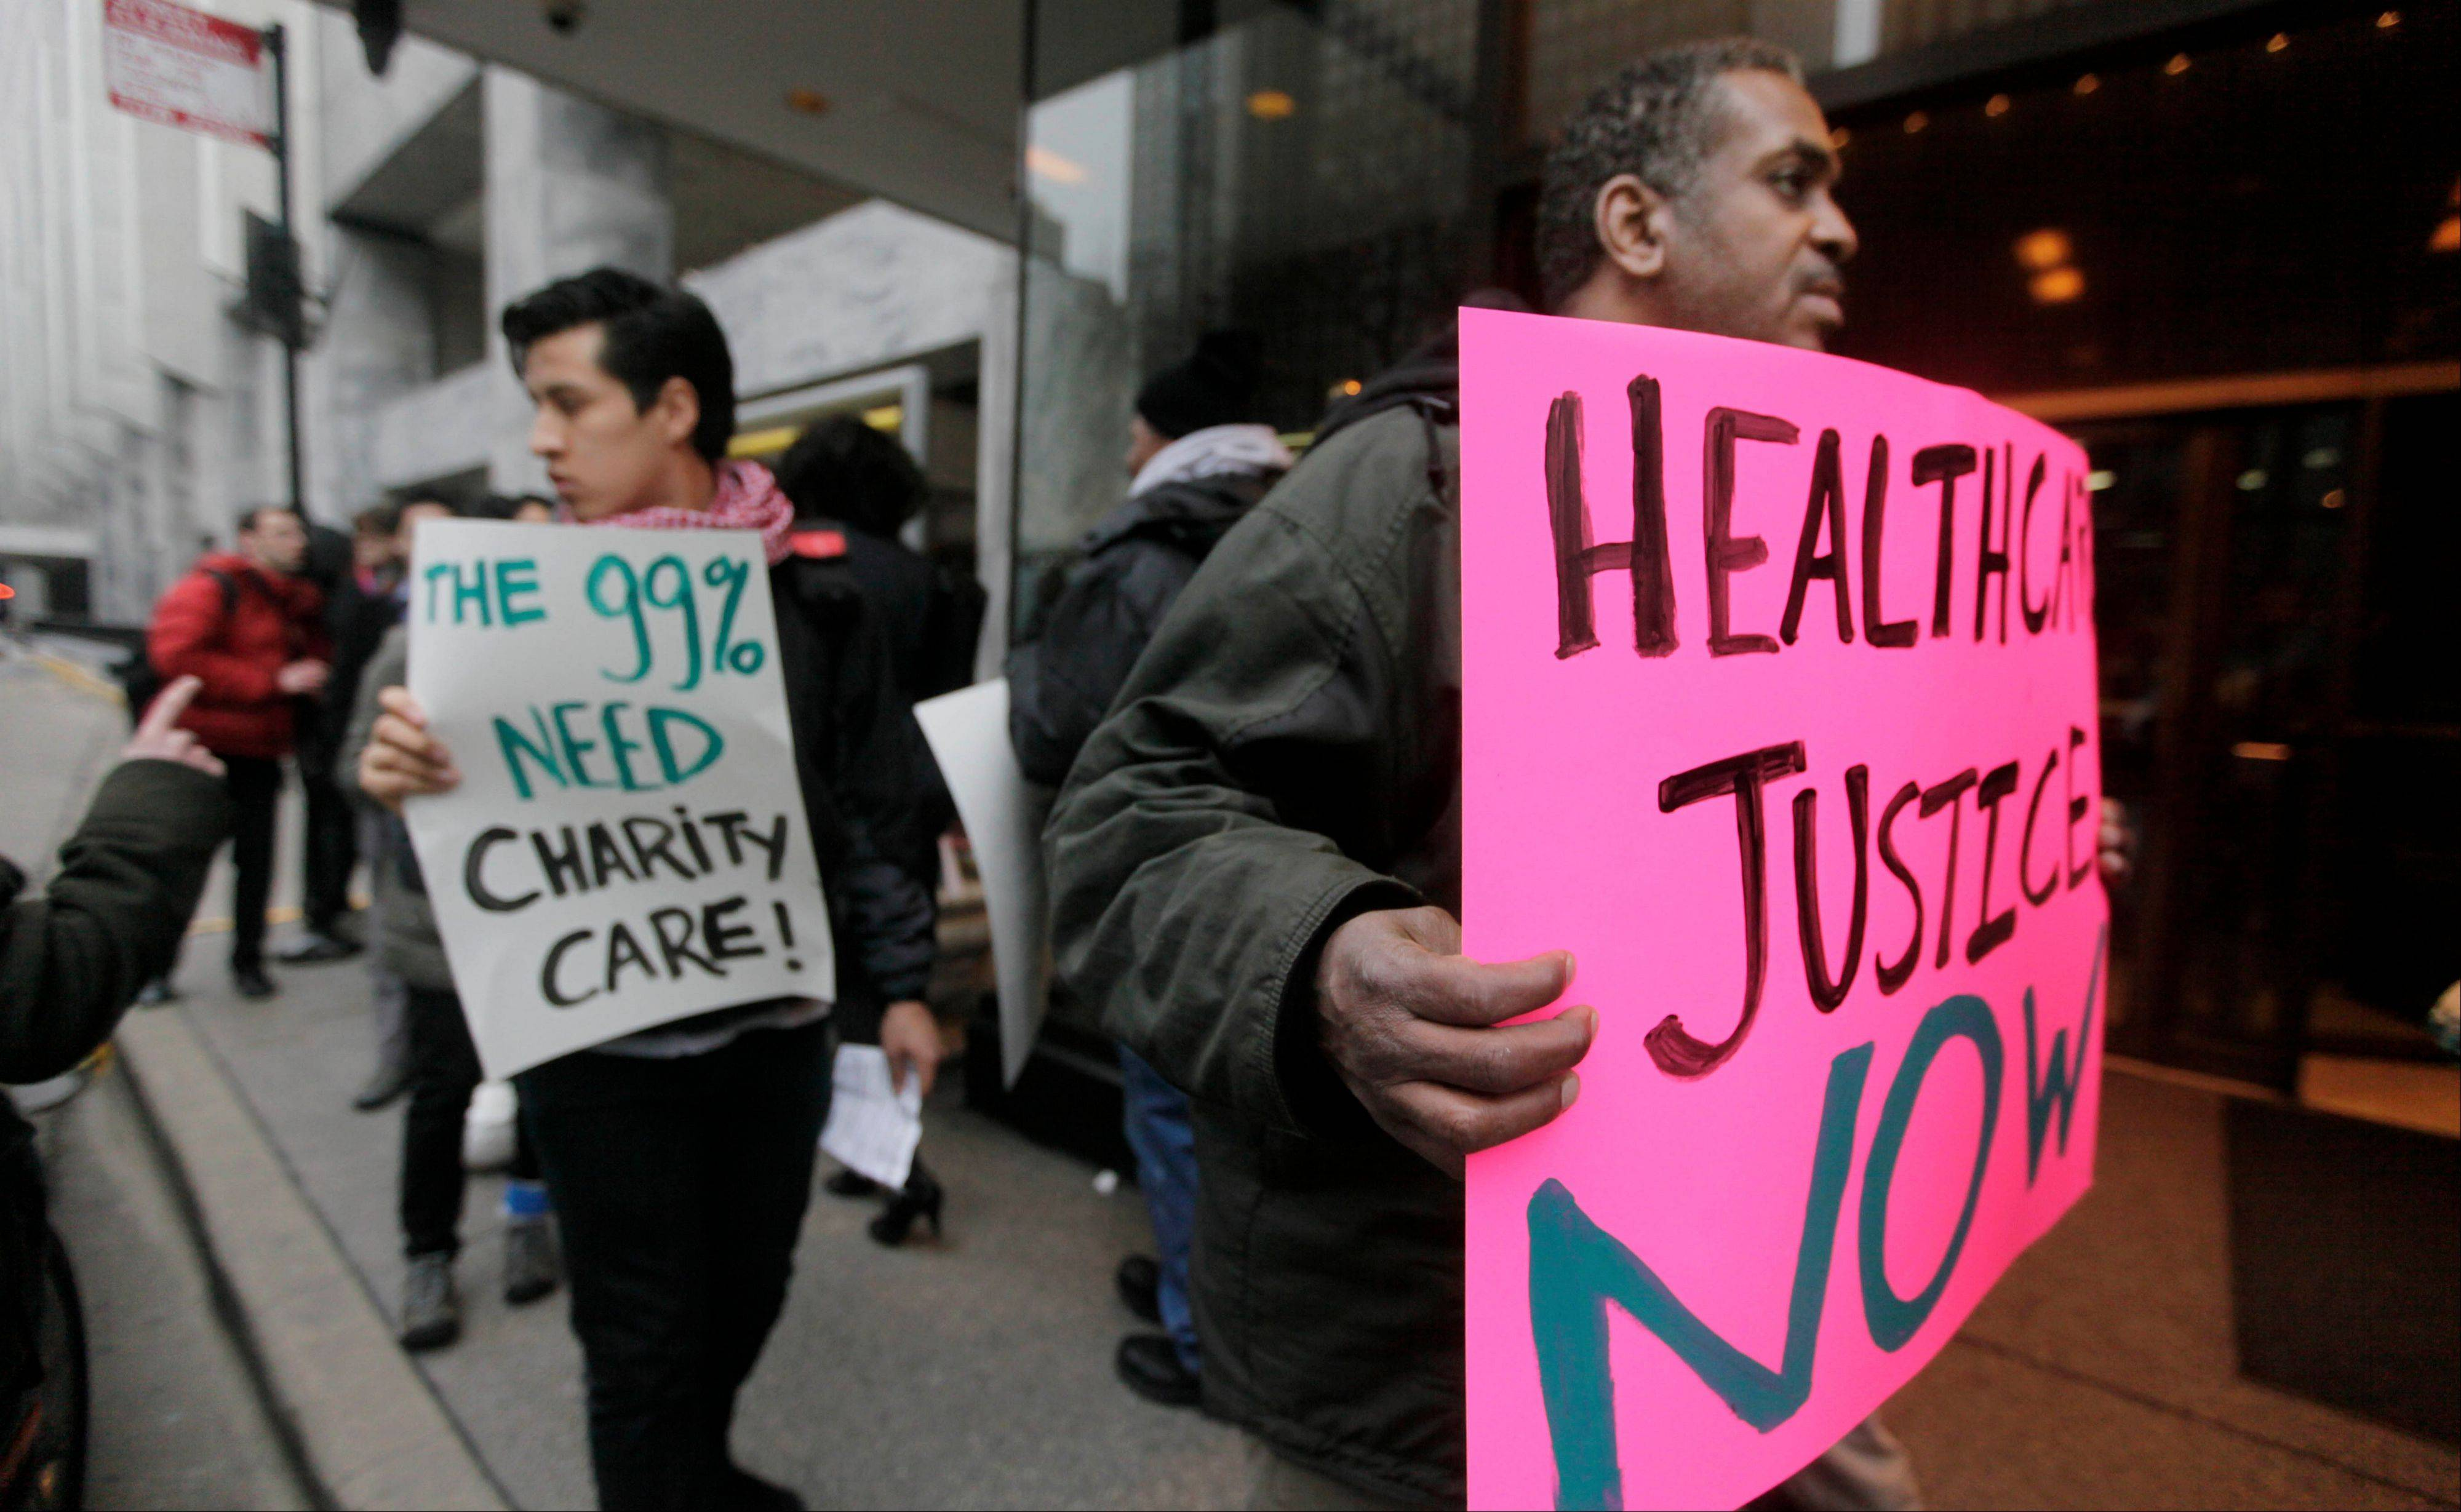 Members of the Fair Care Coalition, representing patients, taxpayers, community leaders and health policy researchers, picket outside the Ritz-Carlton hotel Thursday in Chicago, where nonprofit hospital trustees were meeting to discuss hospital tax exemptions.